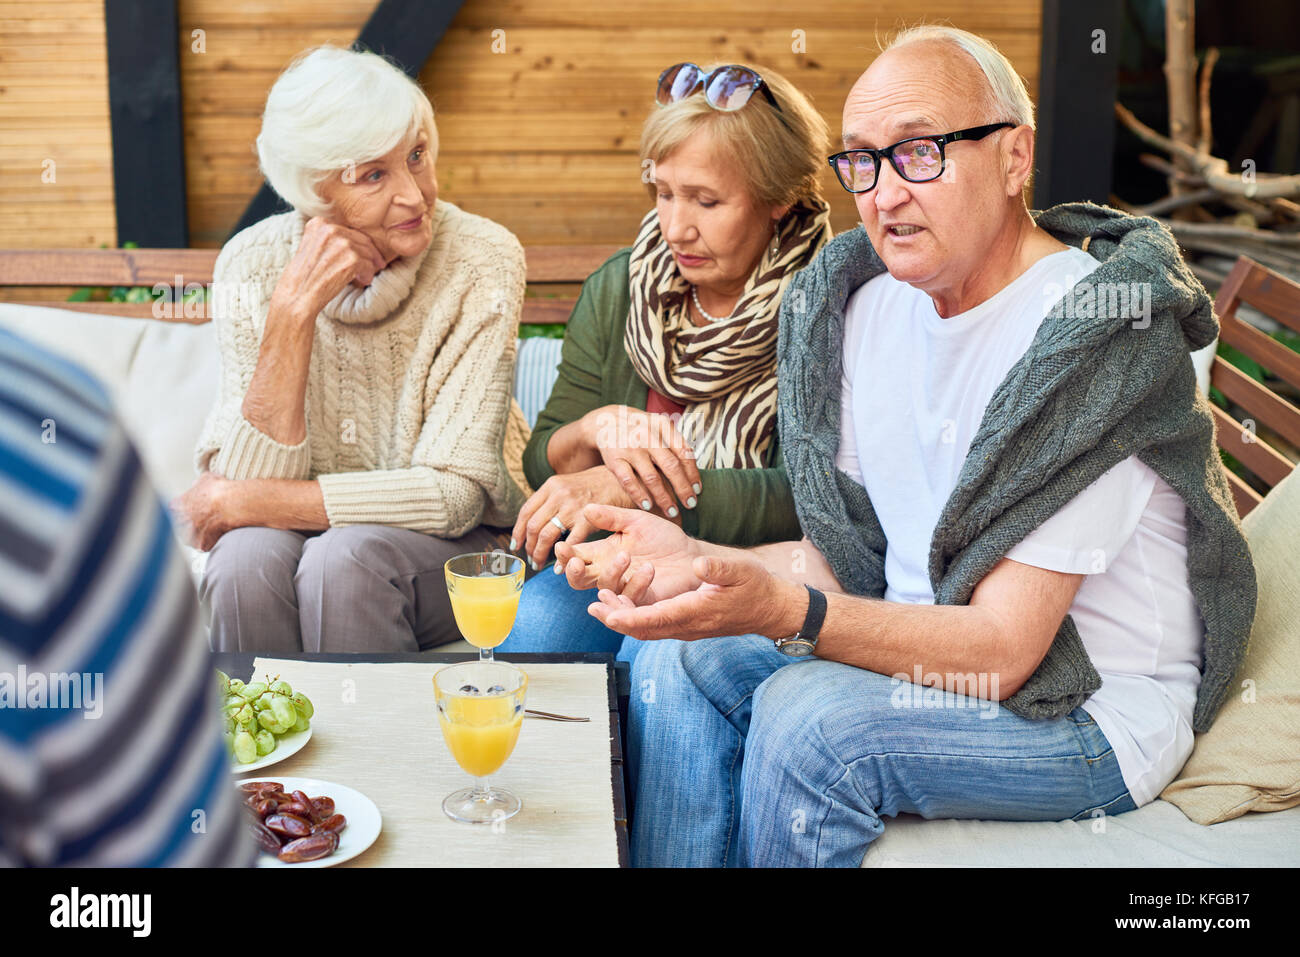 Gathering of Friends at Outdoor Cafe - Stock Image